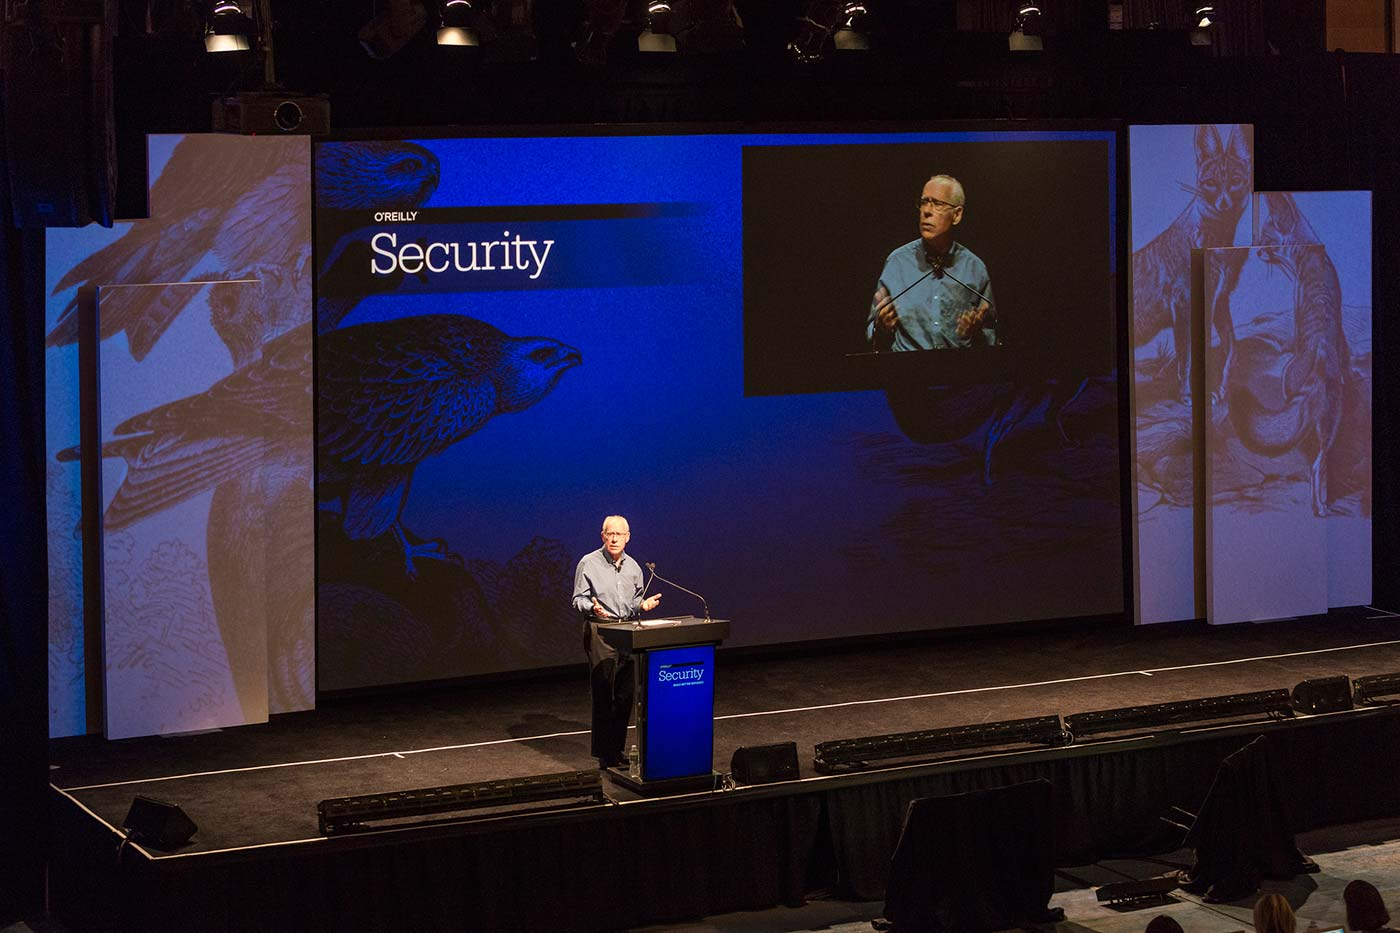 Keynote stage at the O'Reilly Security Conference in New York